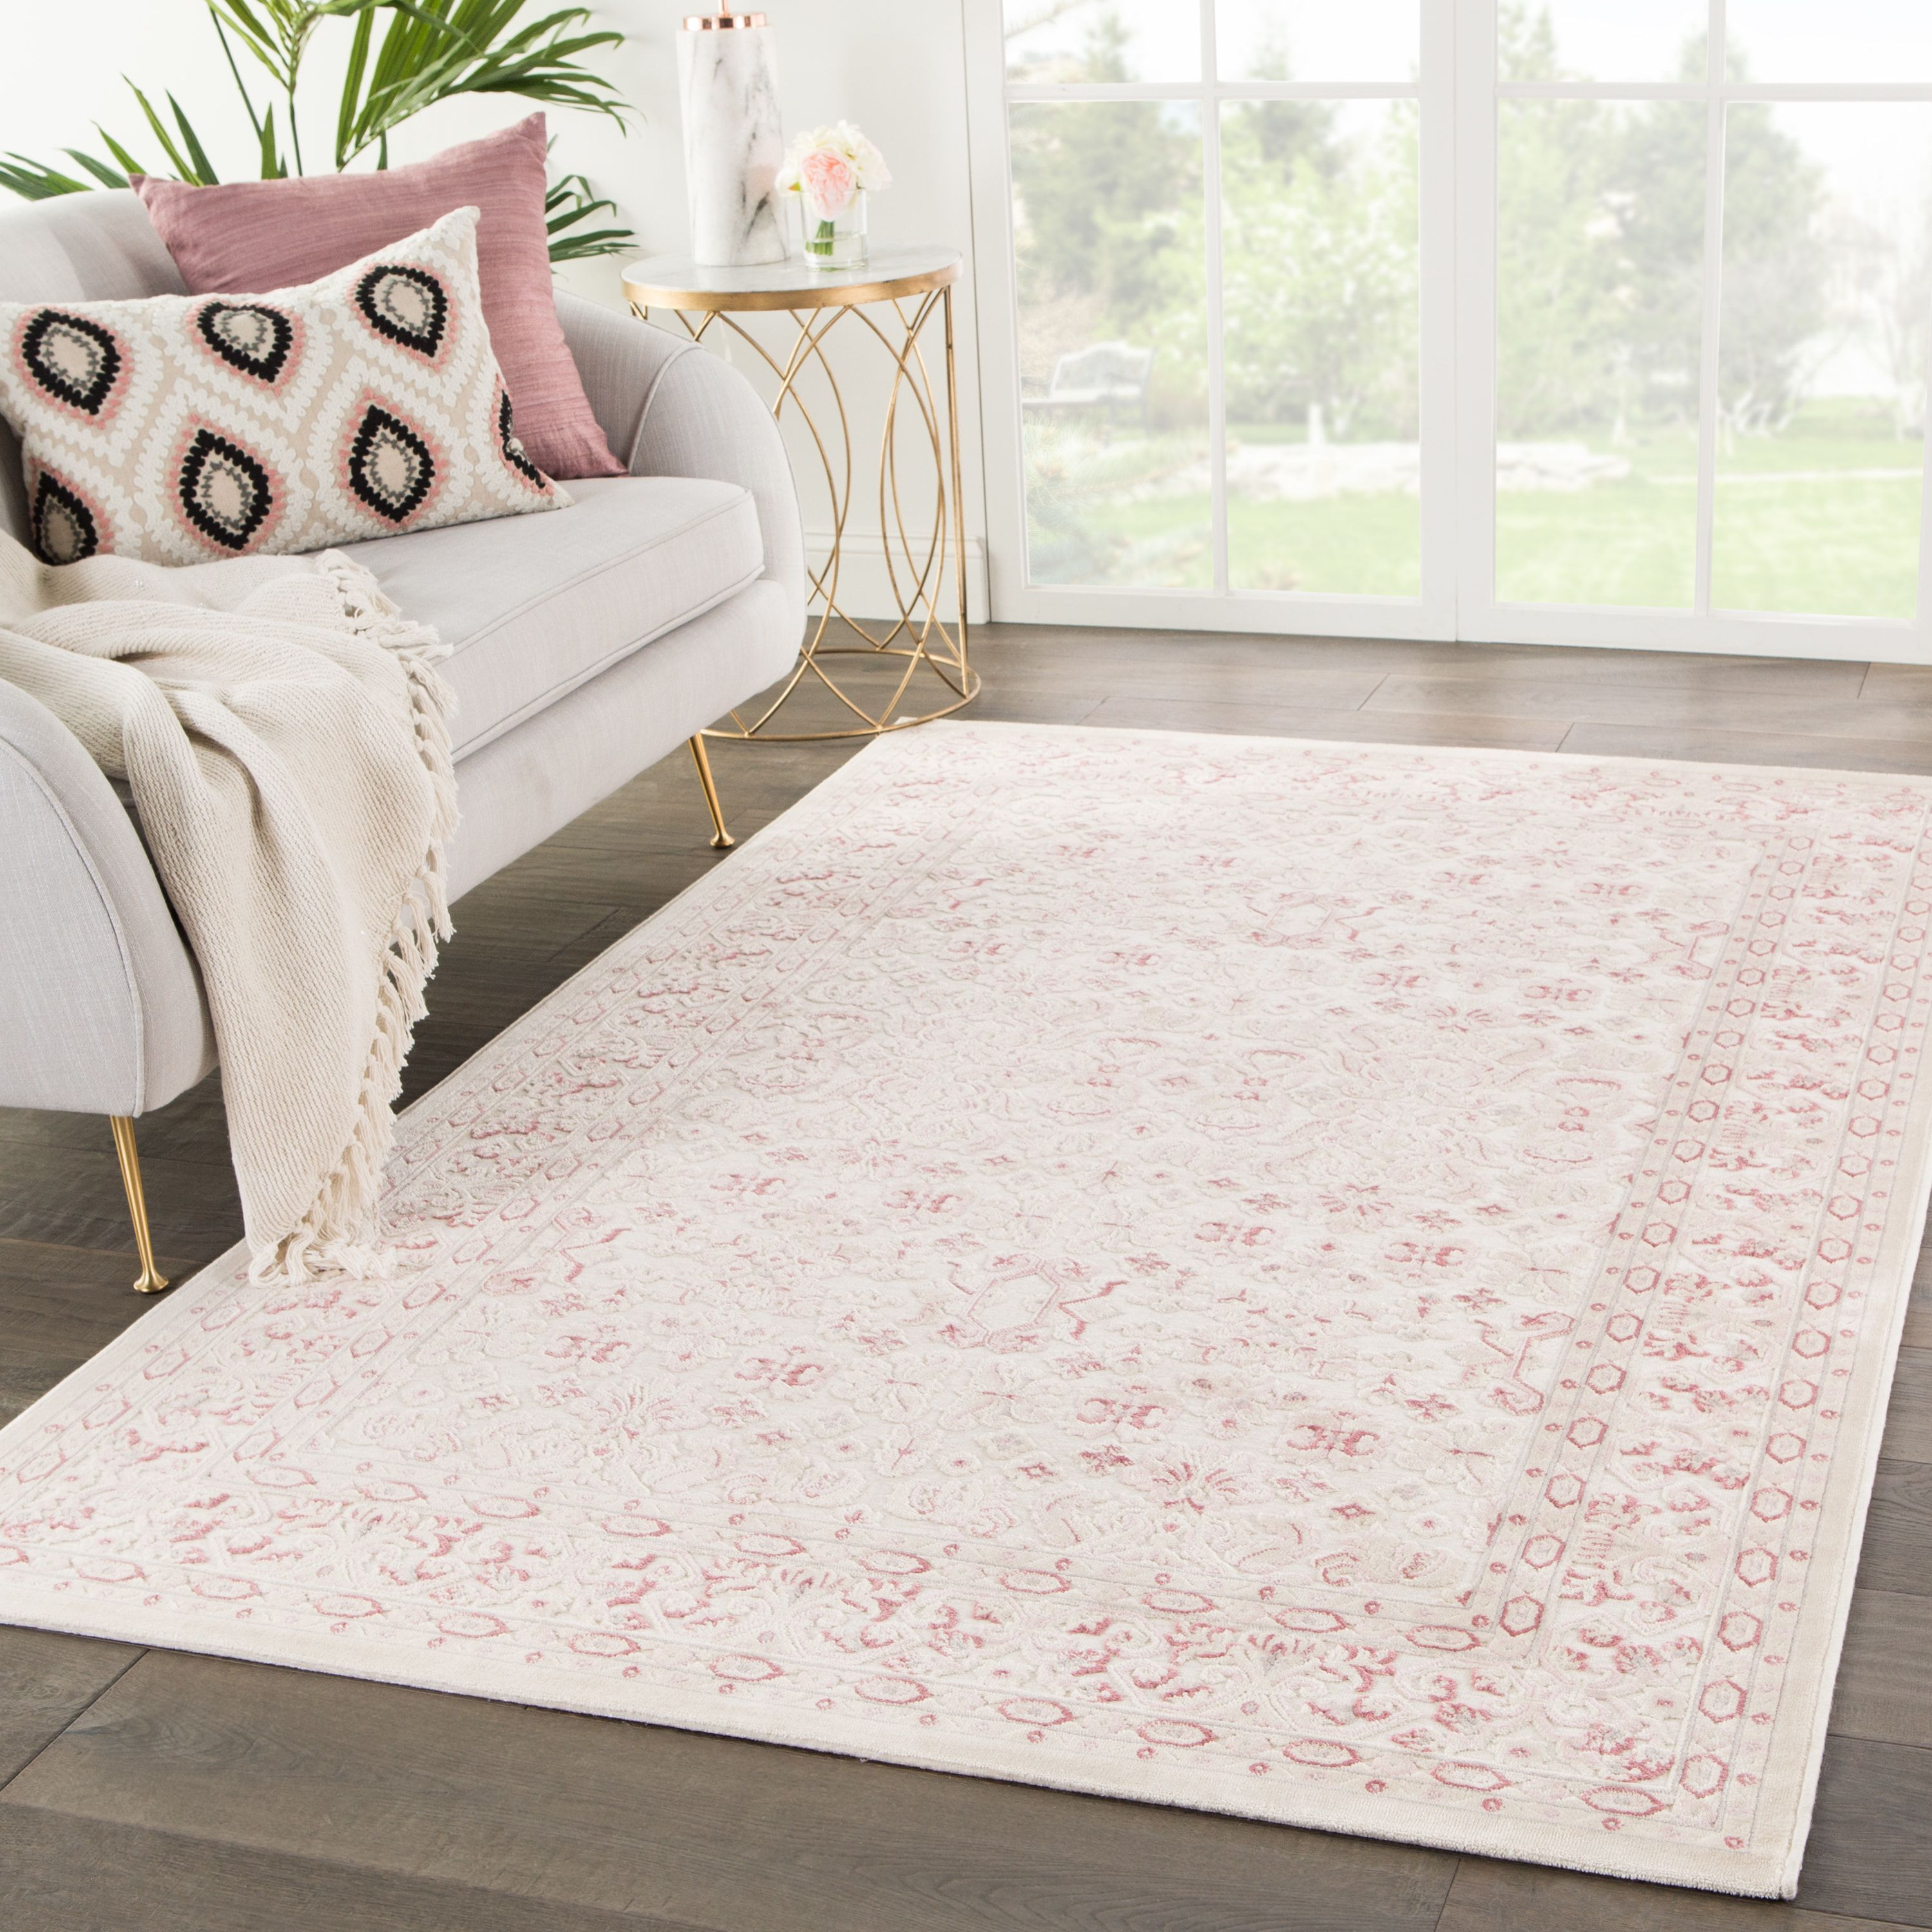 This Soft Pale Pink Rug Would Look Fabulous In A Nursery Or With Cottage Decor Find It With Free Shipping At Plushrugs Com Pink Area Rug Pink Rug Trendy Rug